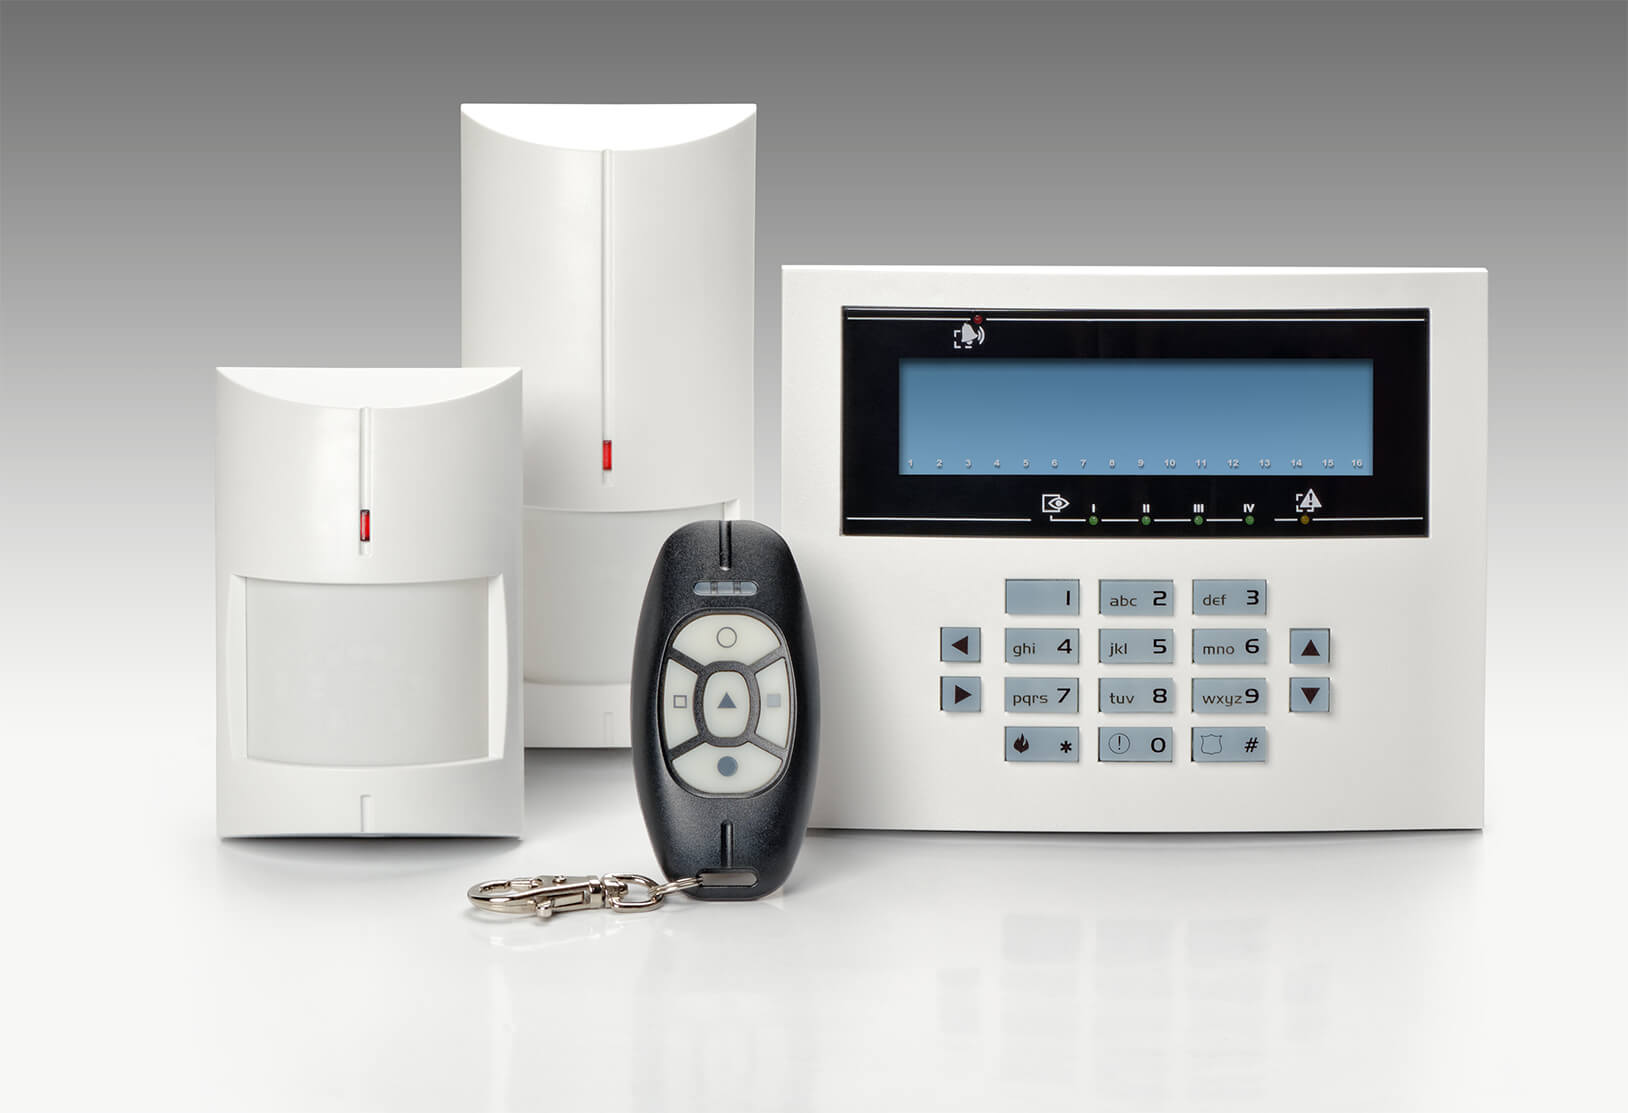 Business & Residential NSI / NACOSS Approved Burglar Alarms In Norbury SW16 - Local Norbury SW16 security company - Call 02078872244 - Dedicated to Safety & Security. Companies, shops and homes ..